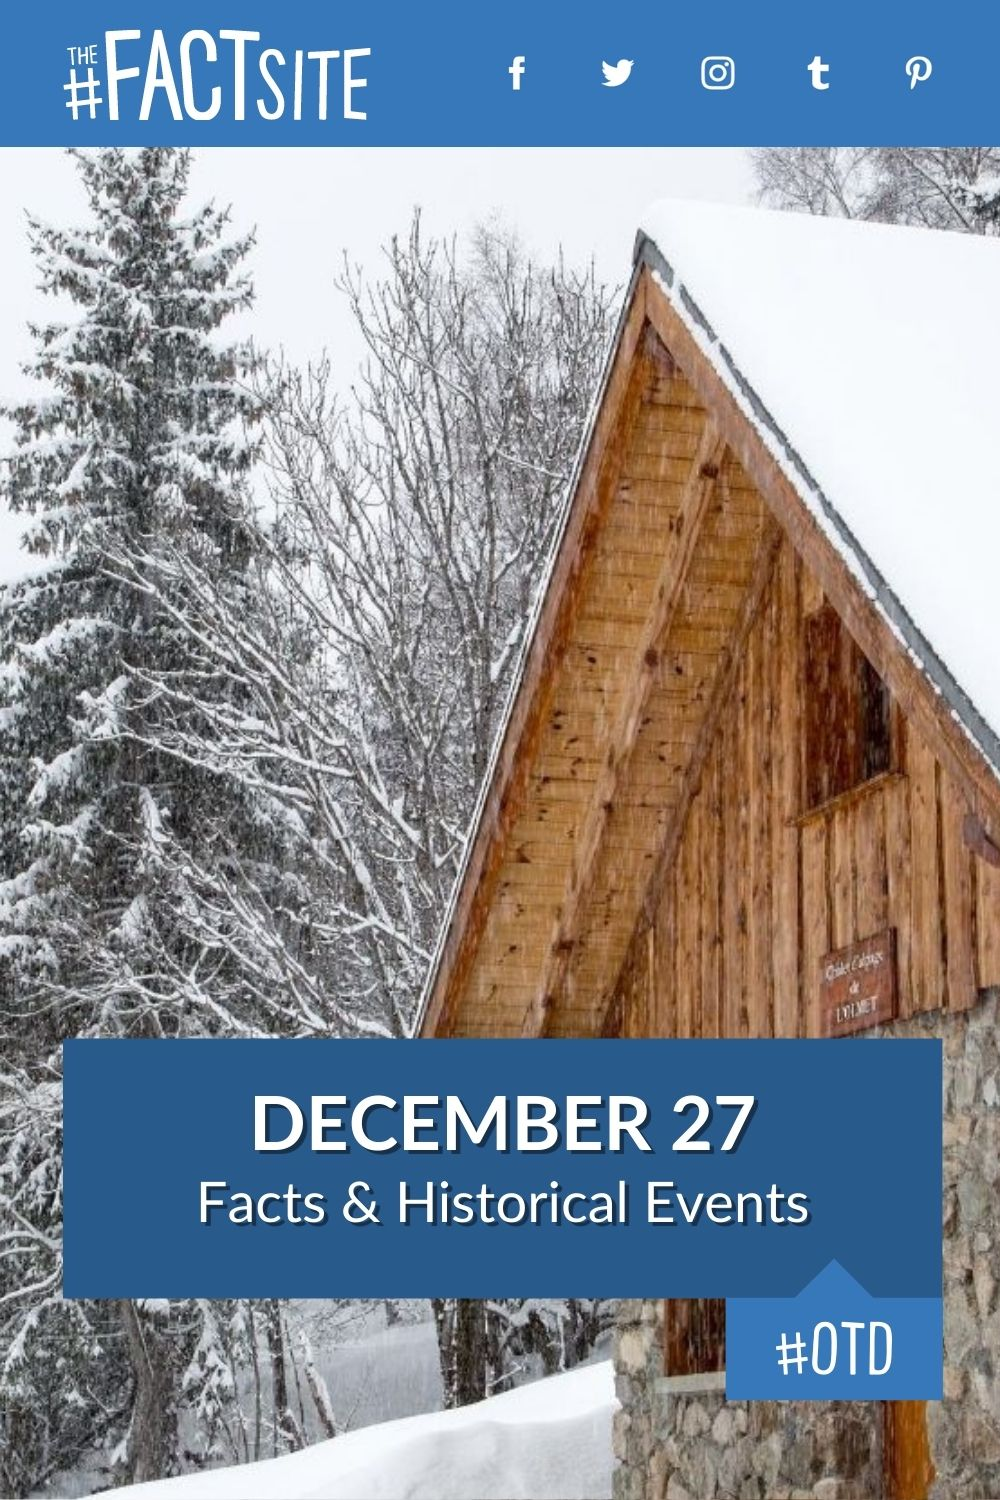 Facts & Historic Events That Happened on December 27